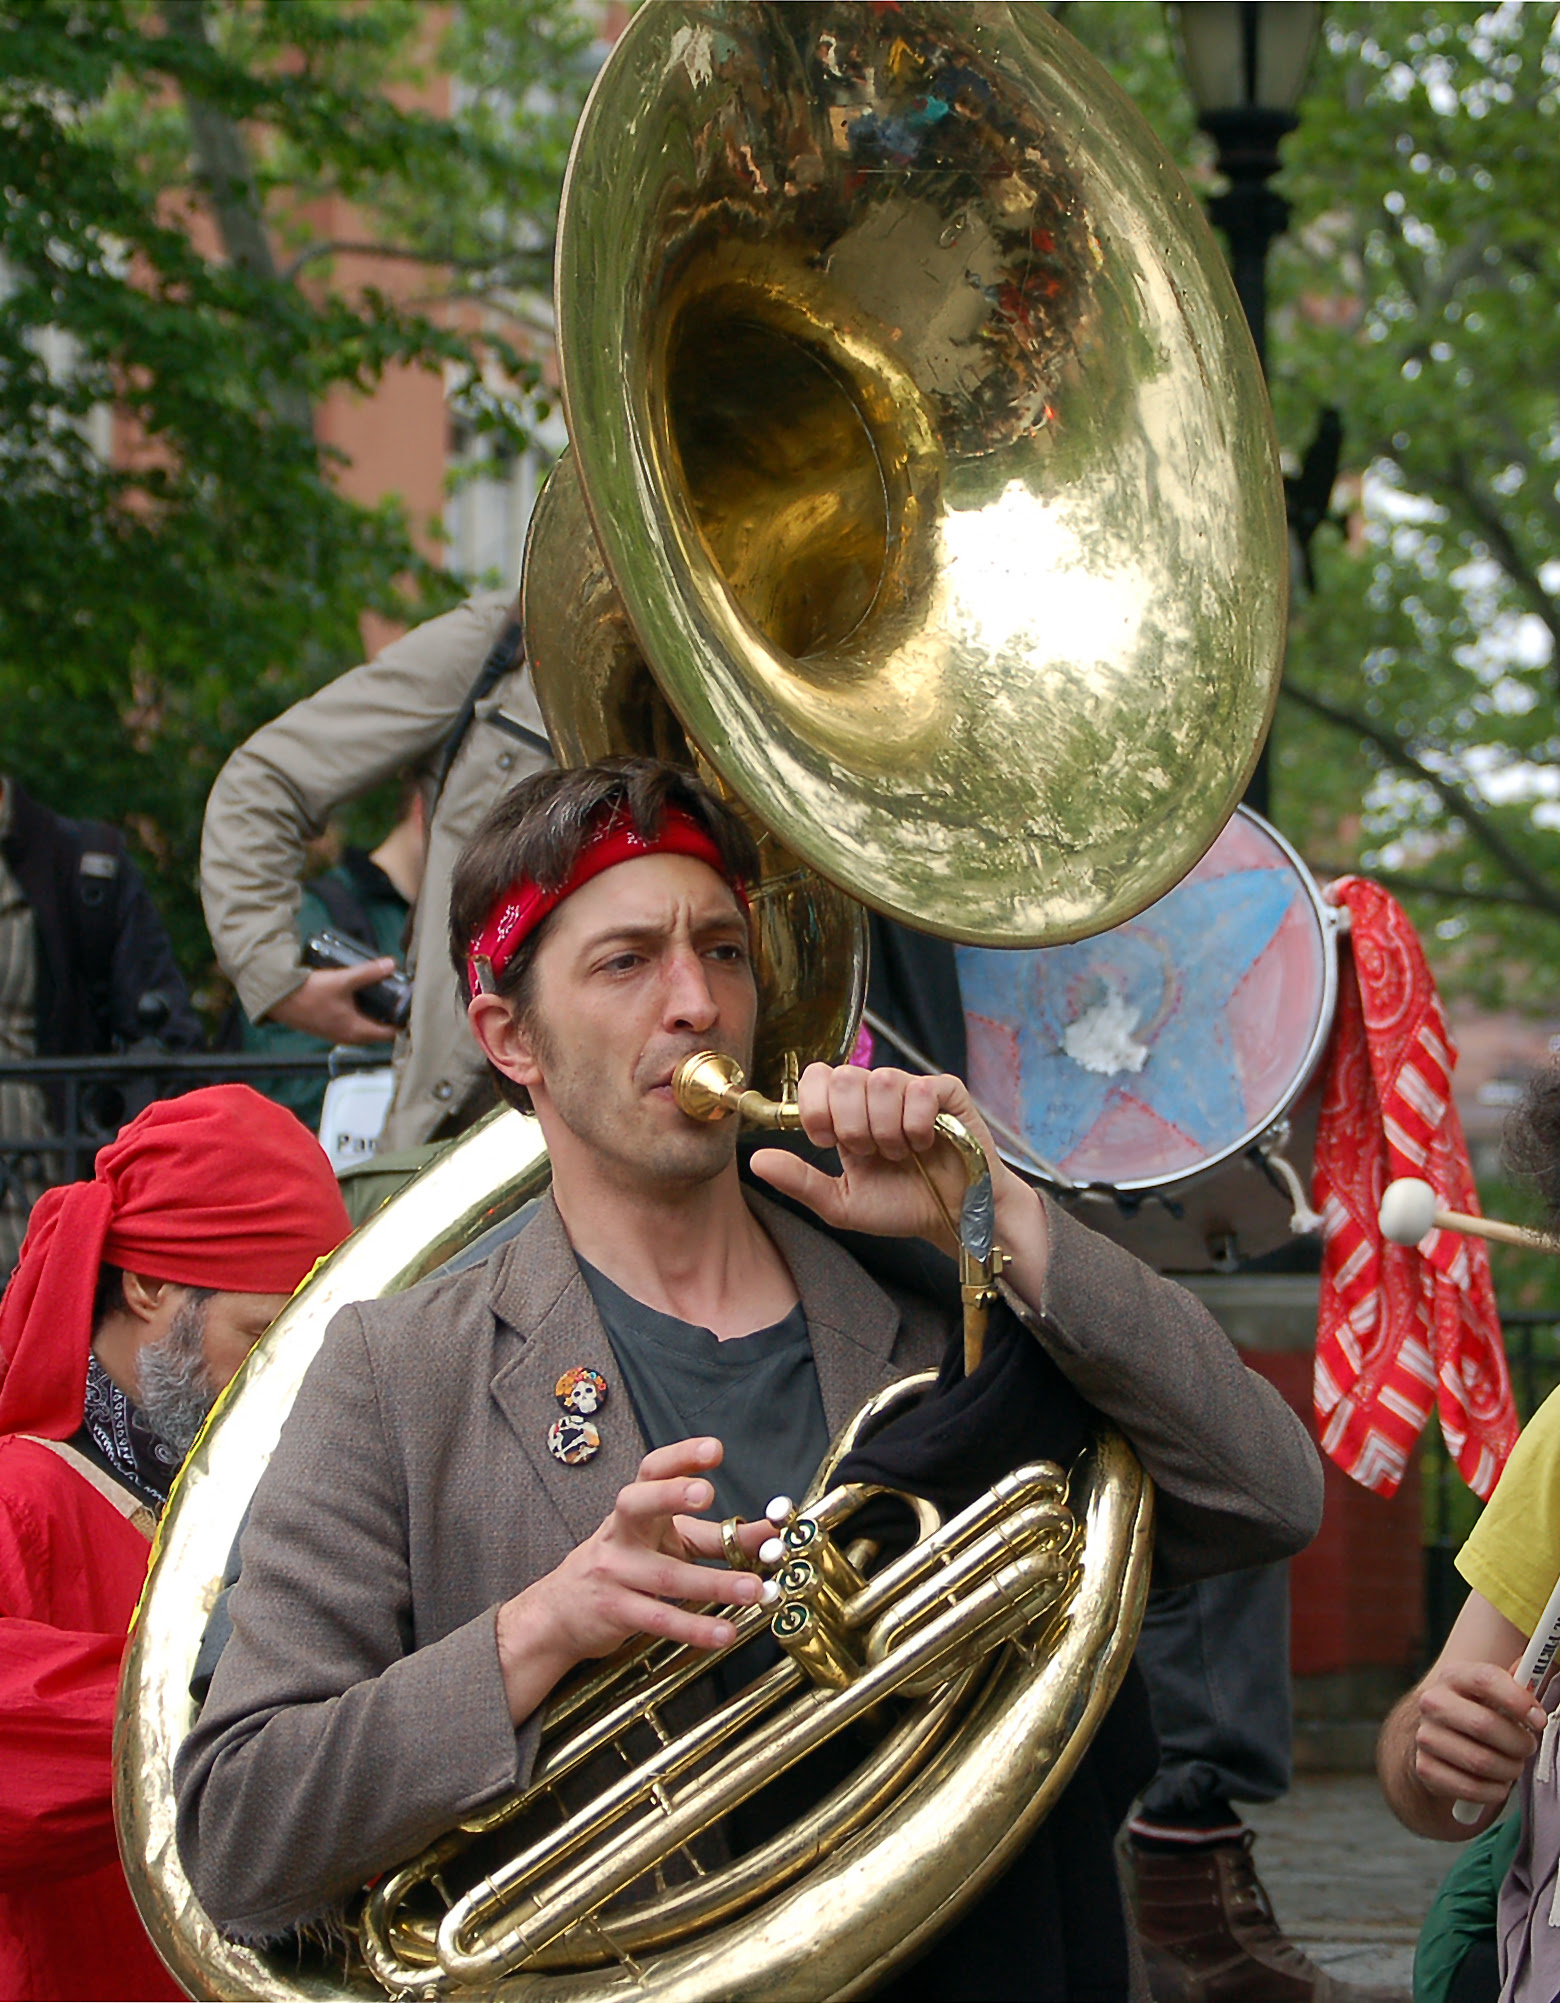 May Day - OWS